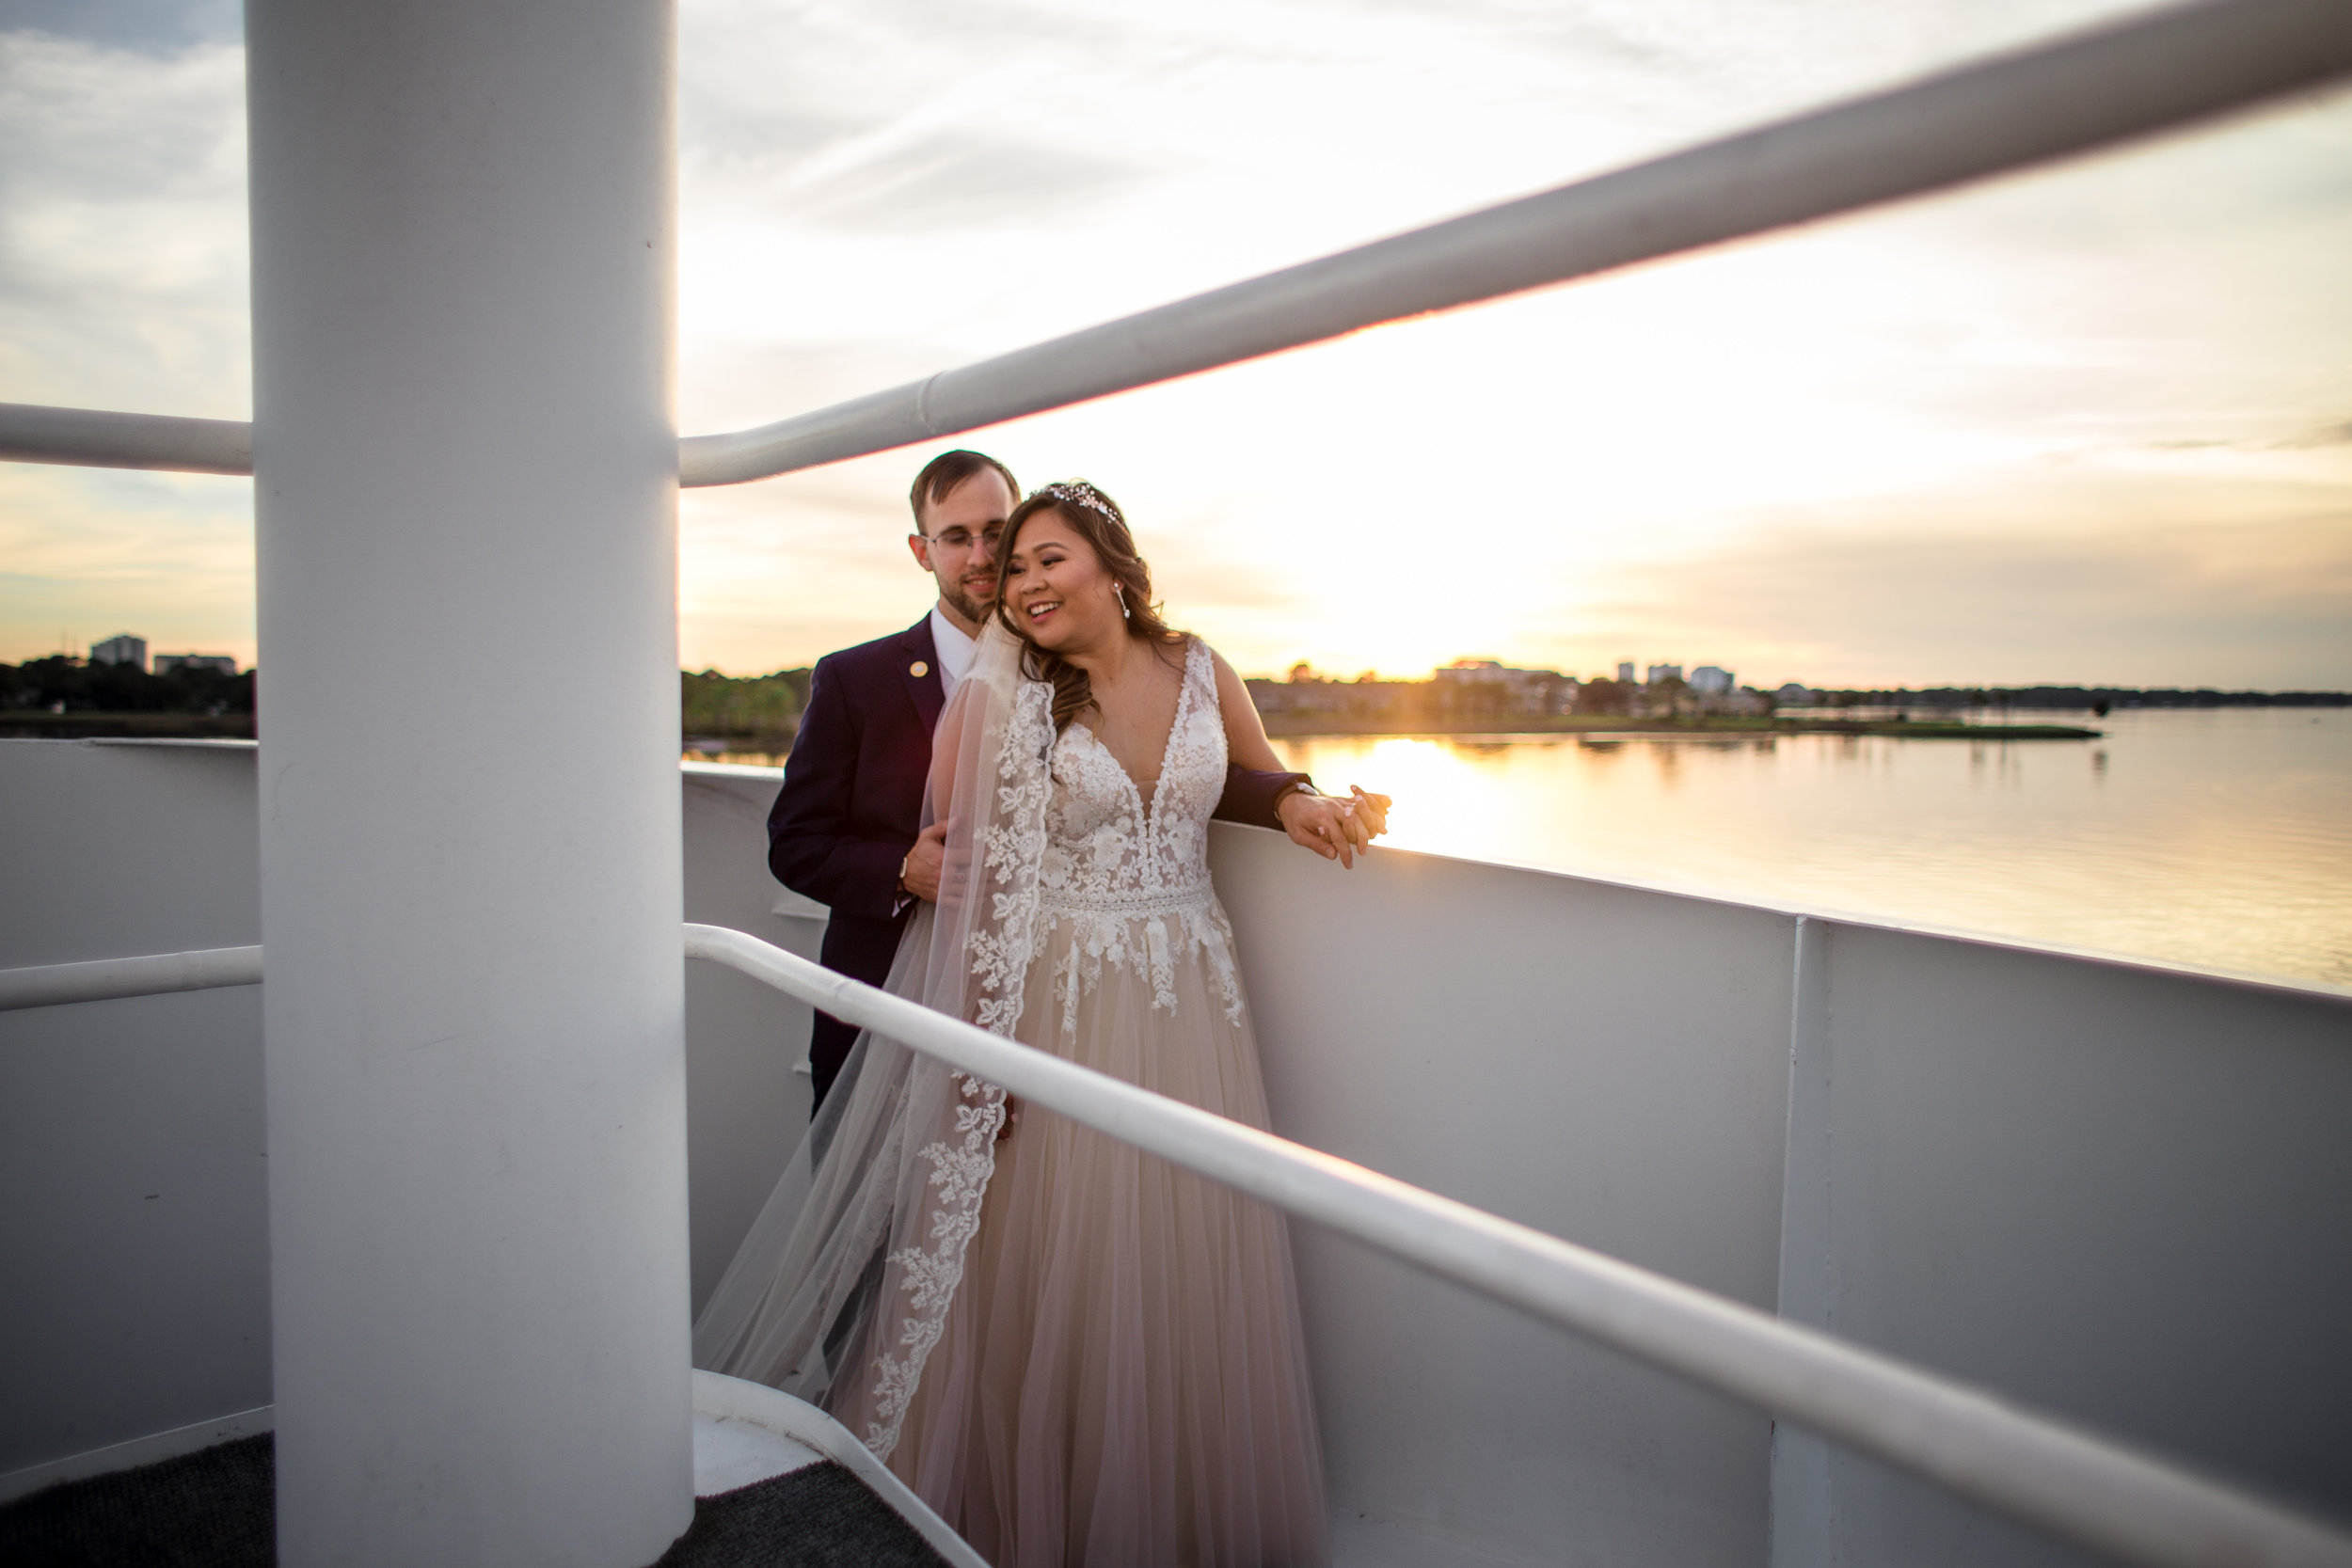 Solaris-Yacht-Destin-Florida-Wedding-Photography-Jerica-Chad-26.jpg